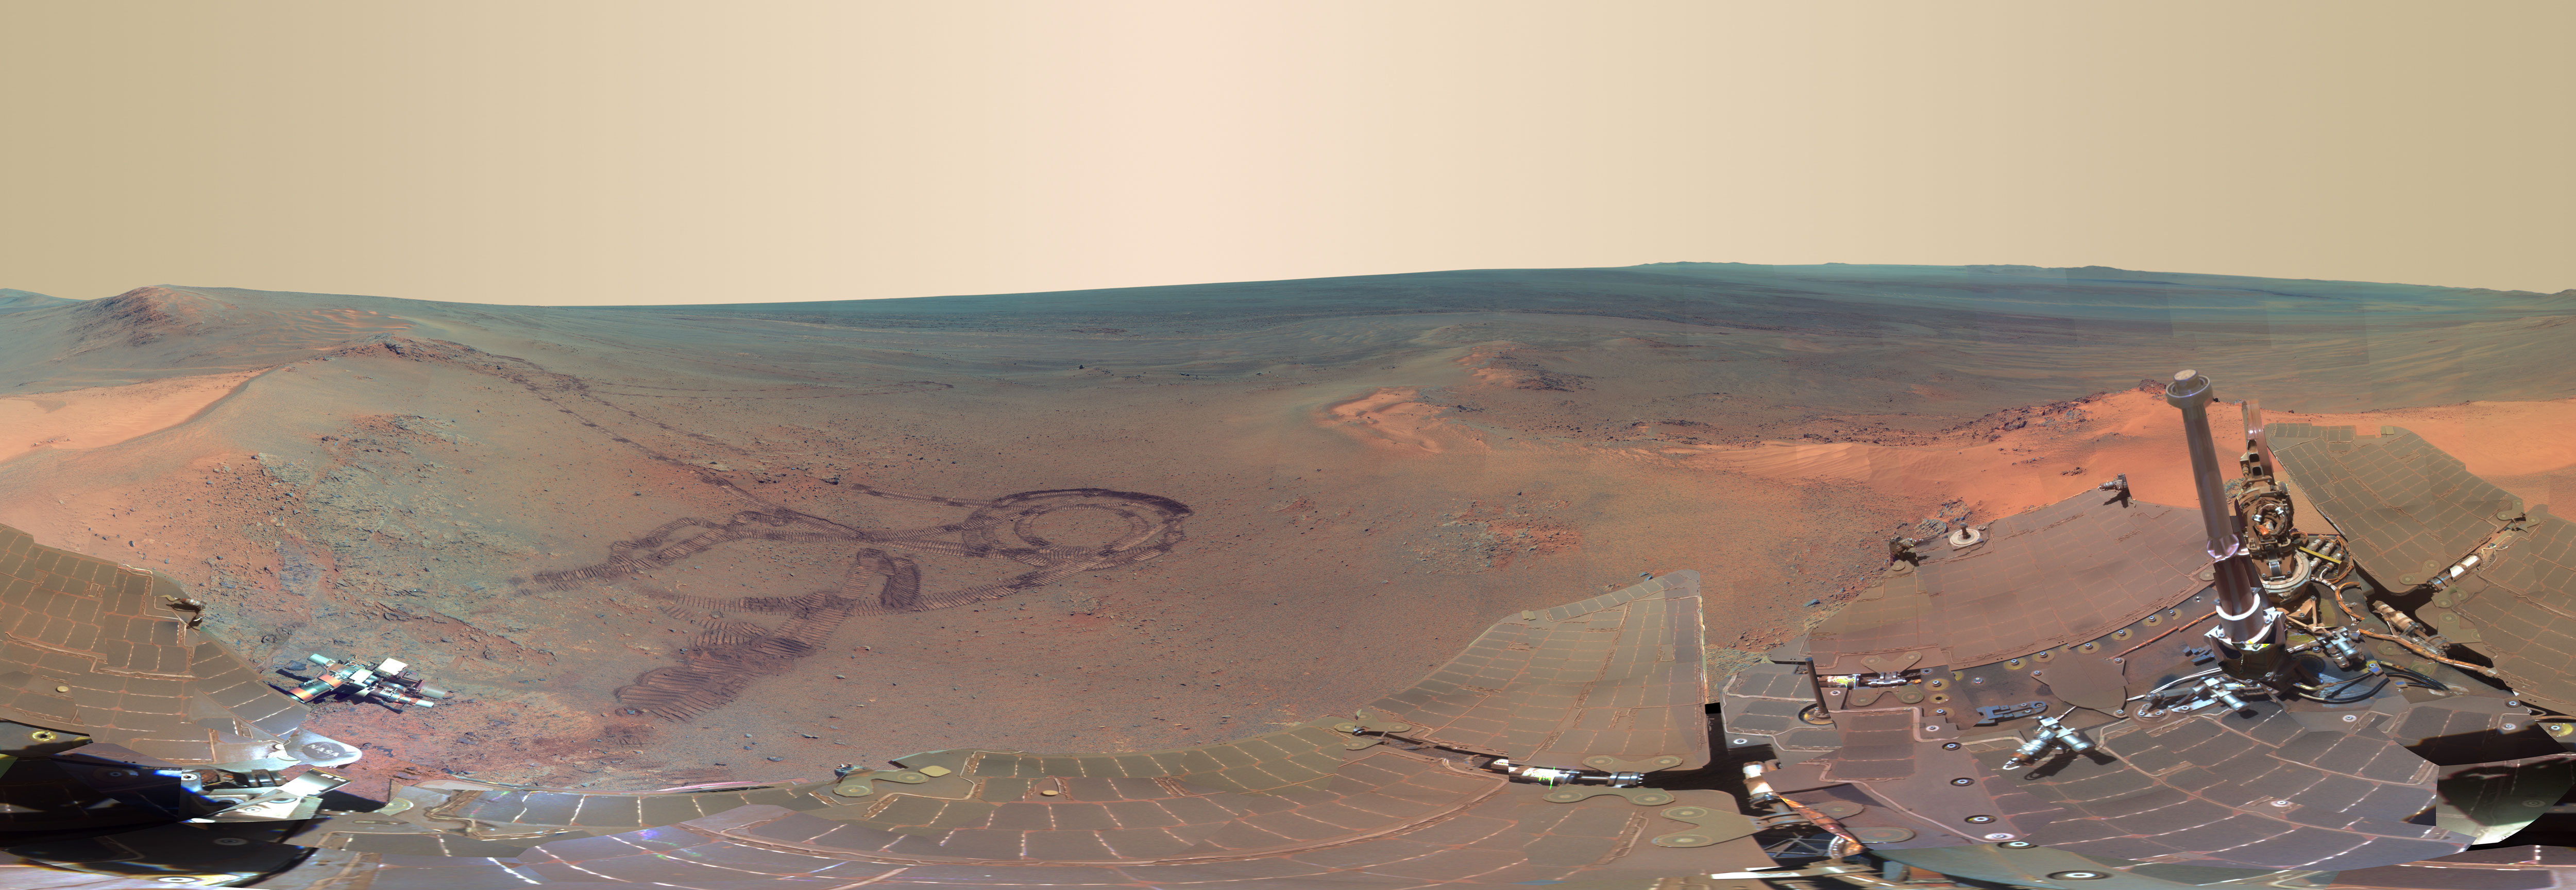 http://ddata.over-blog.com/4/14/30/92/Mars-Nasa.jpg